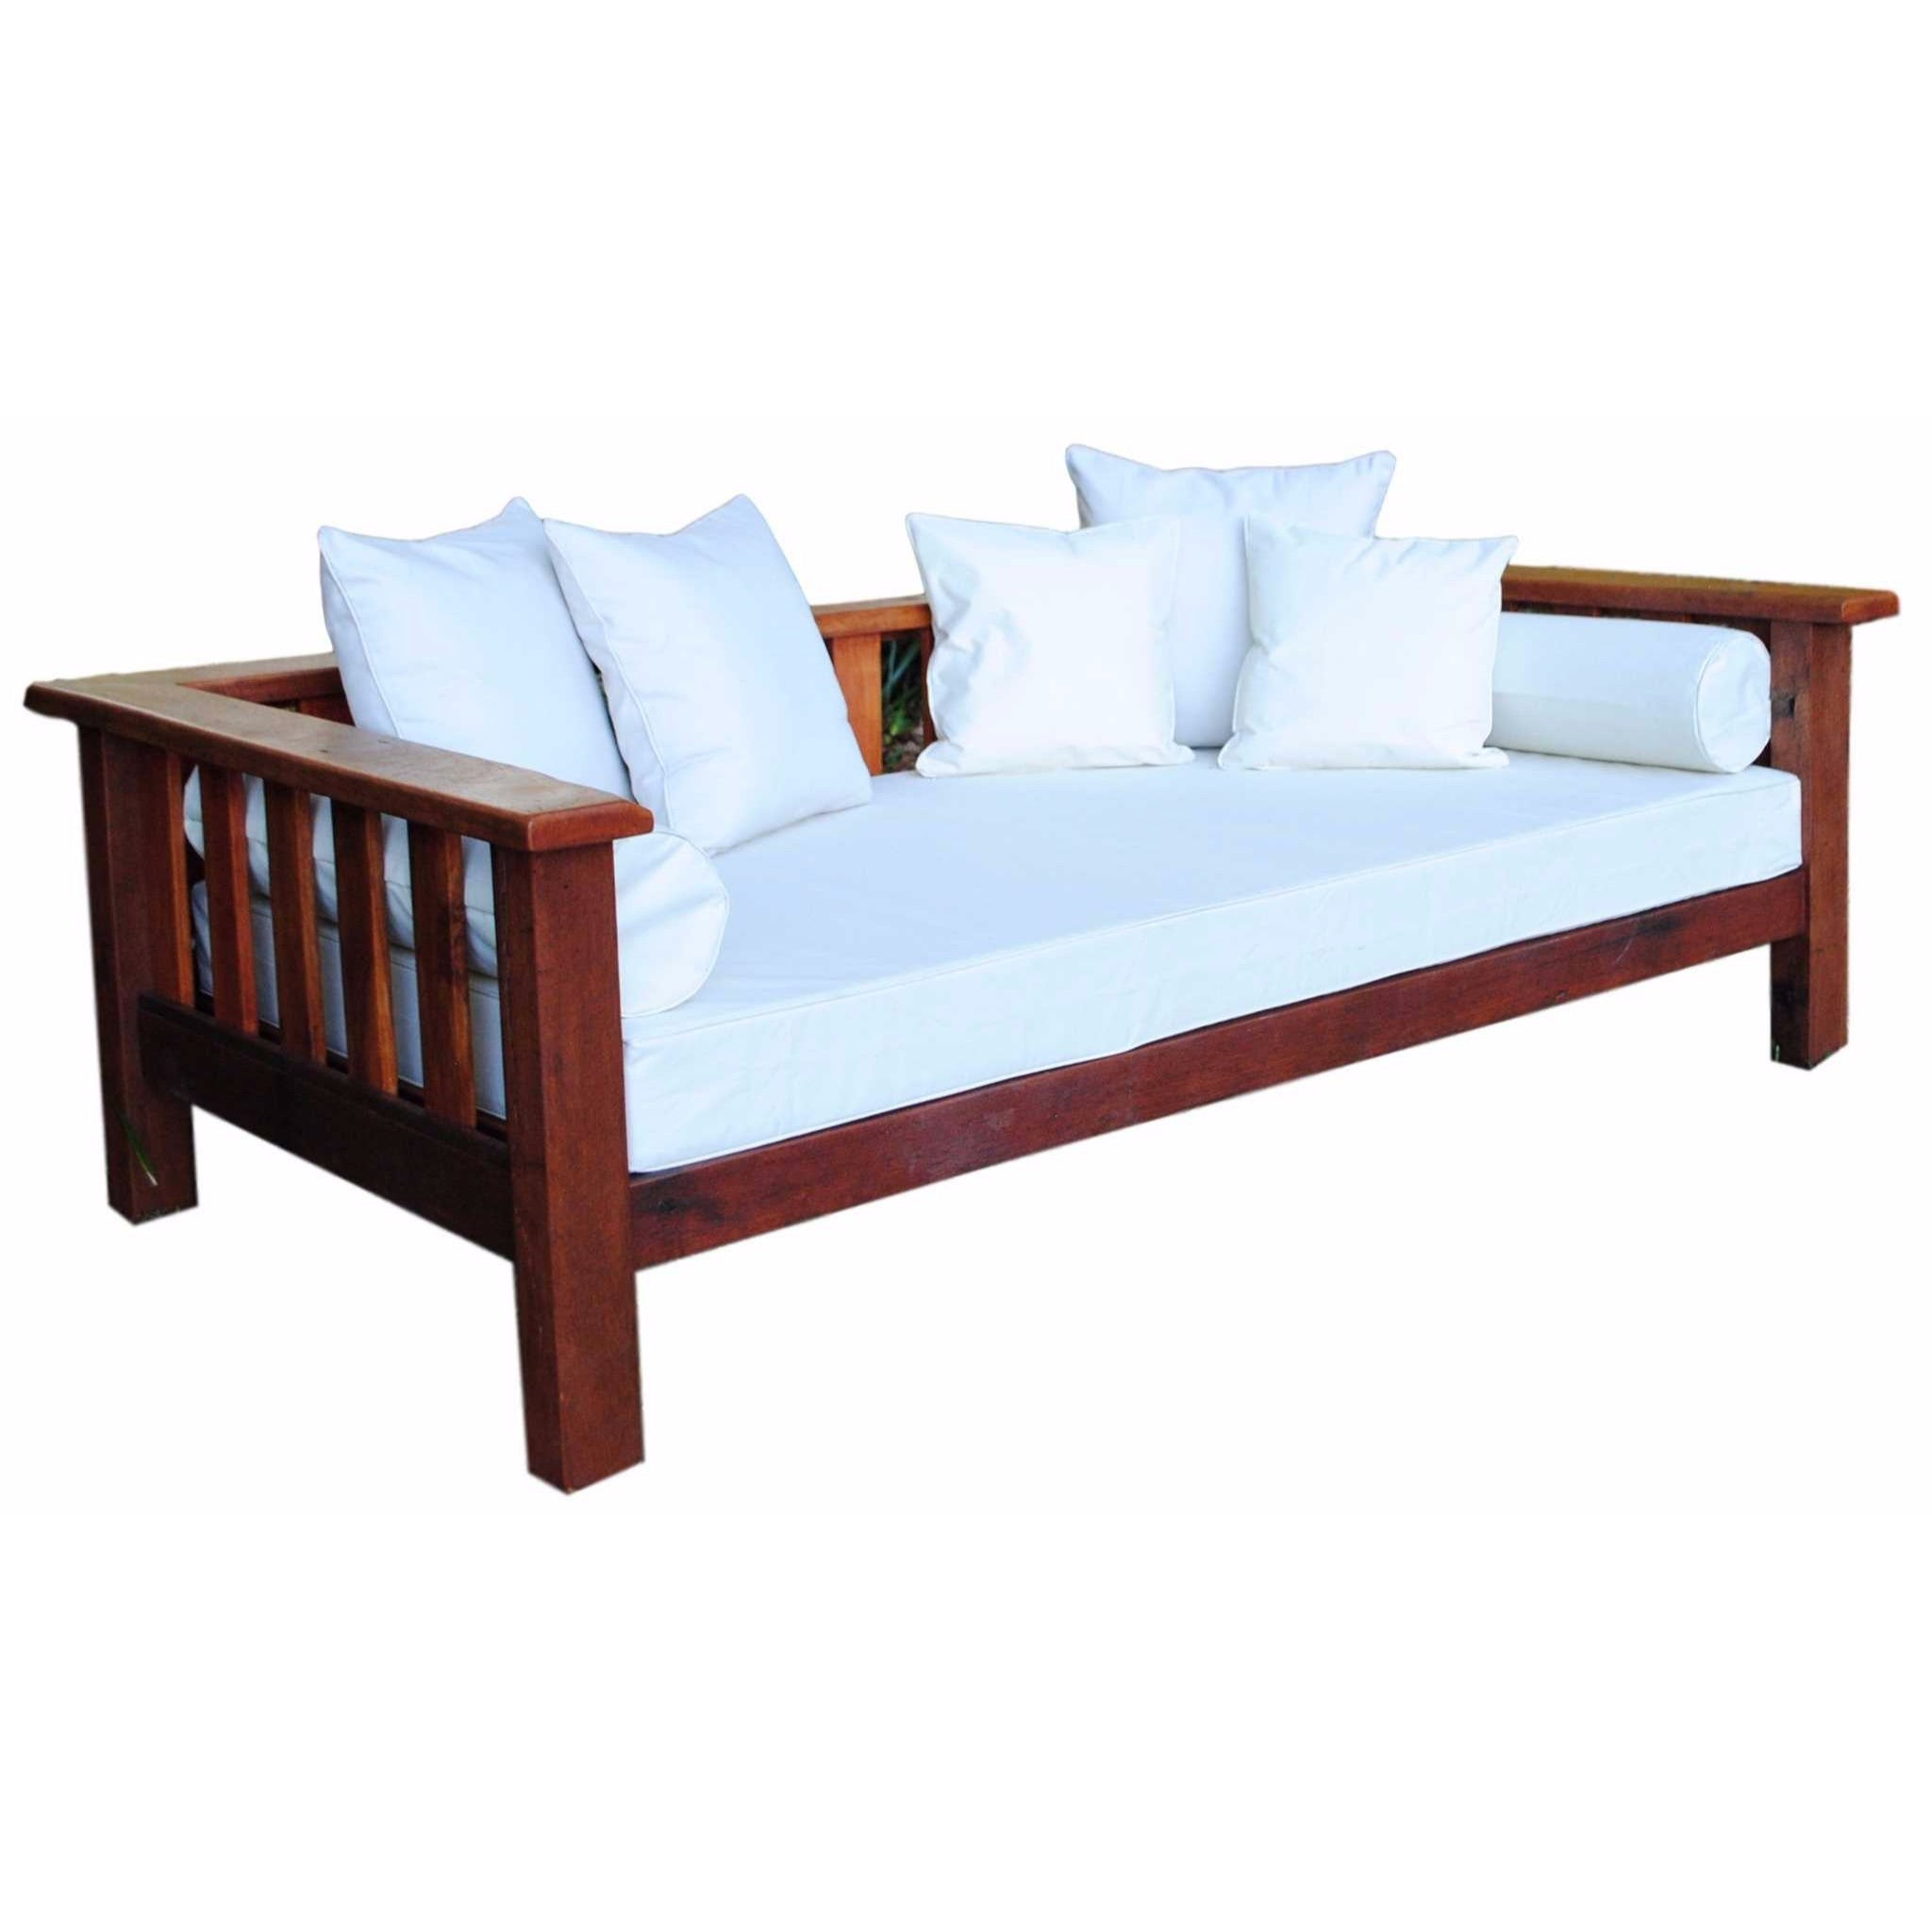 classic recycled hardwood daybed byron channon market uki indoor or outdoor cotton canvas covers shipping australis wide